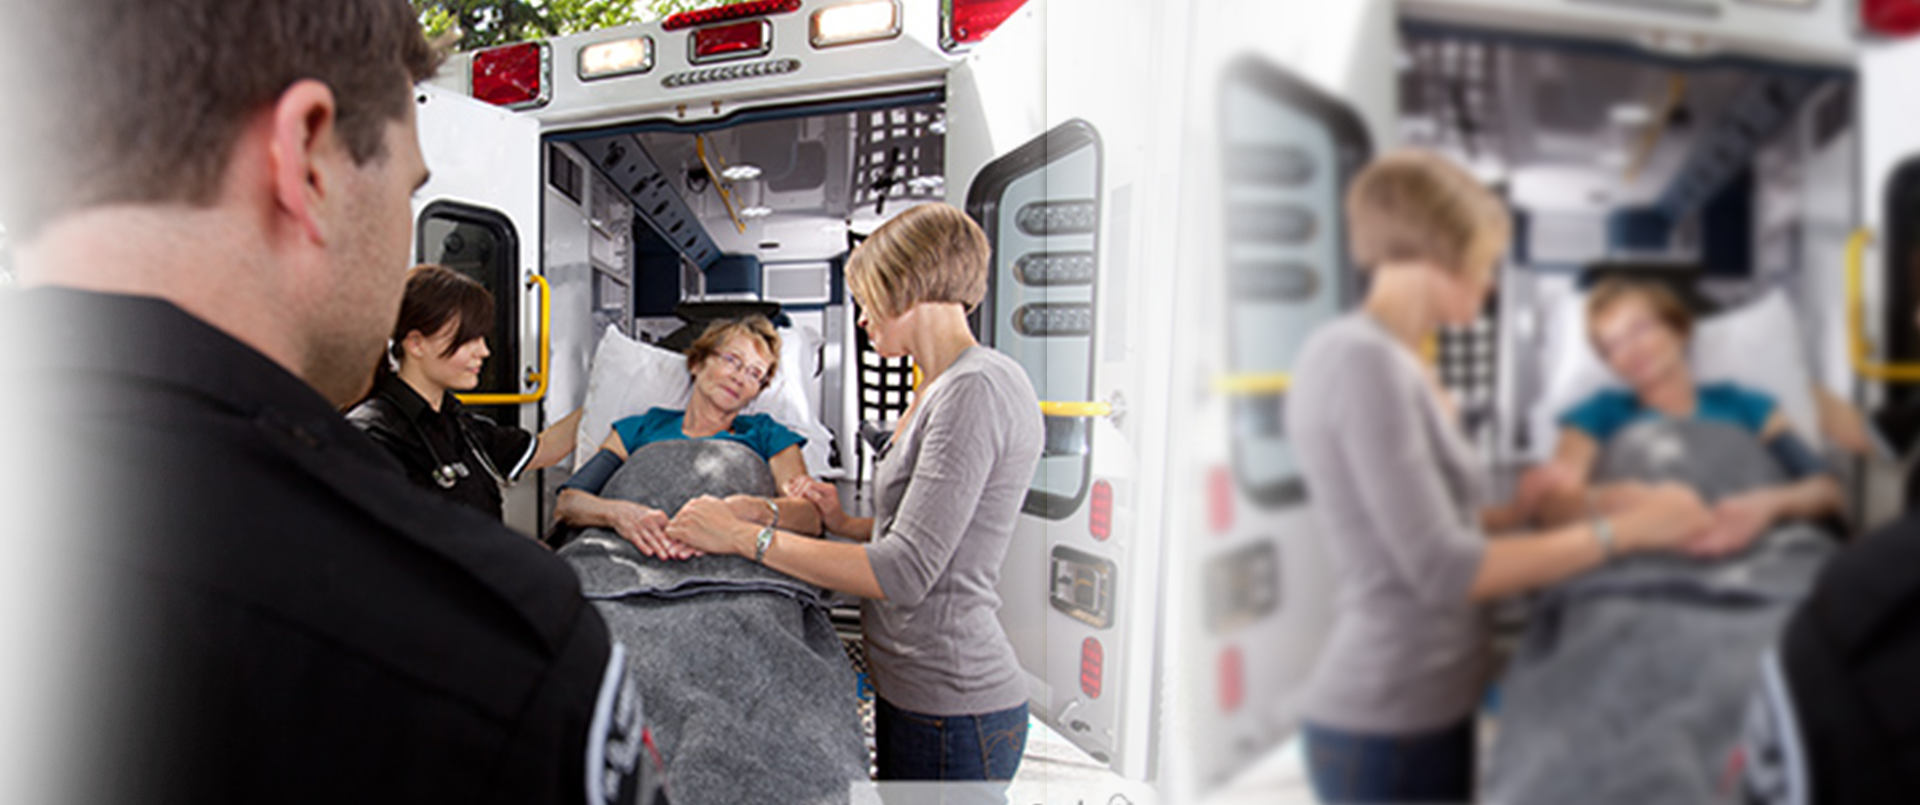 Ambulance Service in Dallas, Houston, Jacksonville, Miami, Tampa